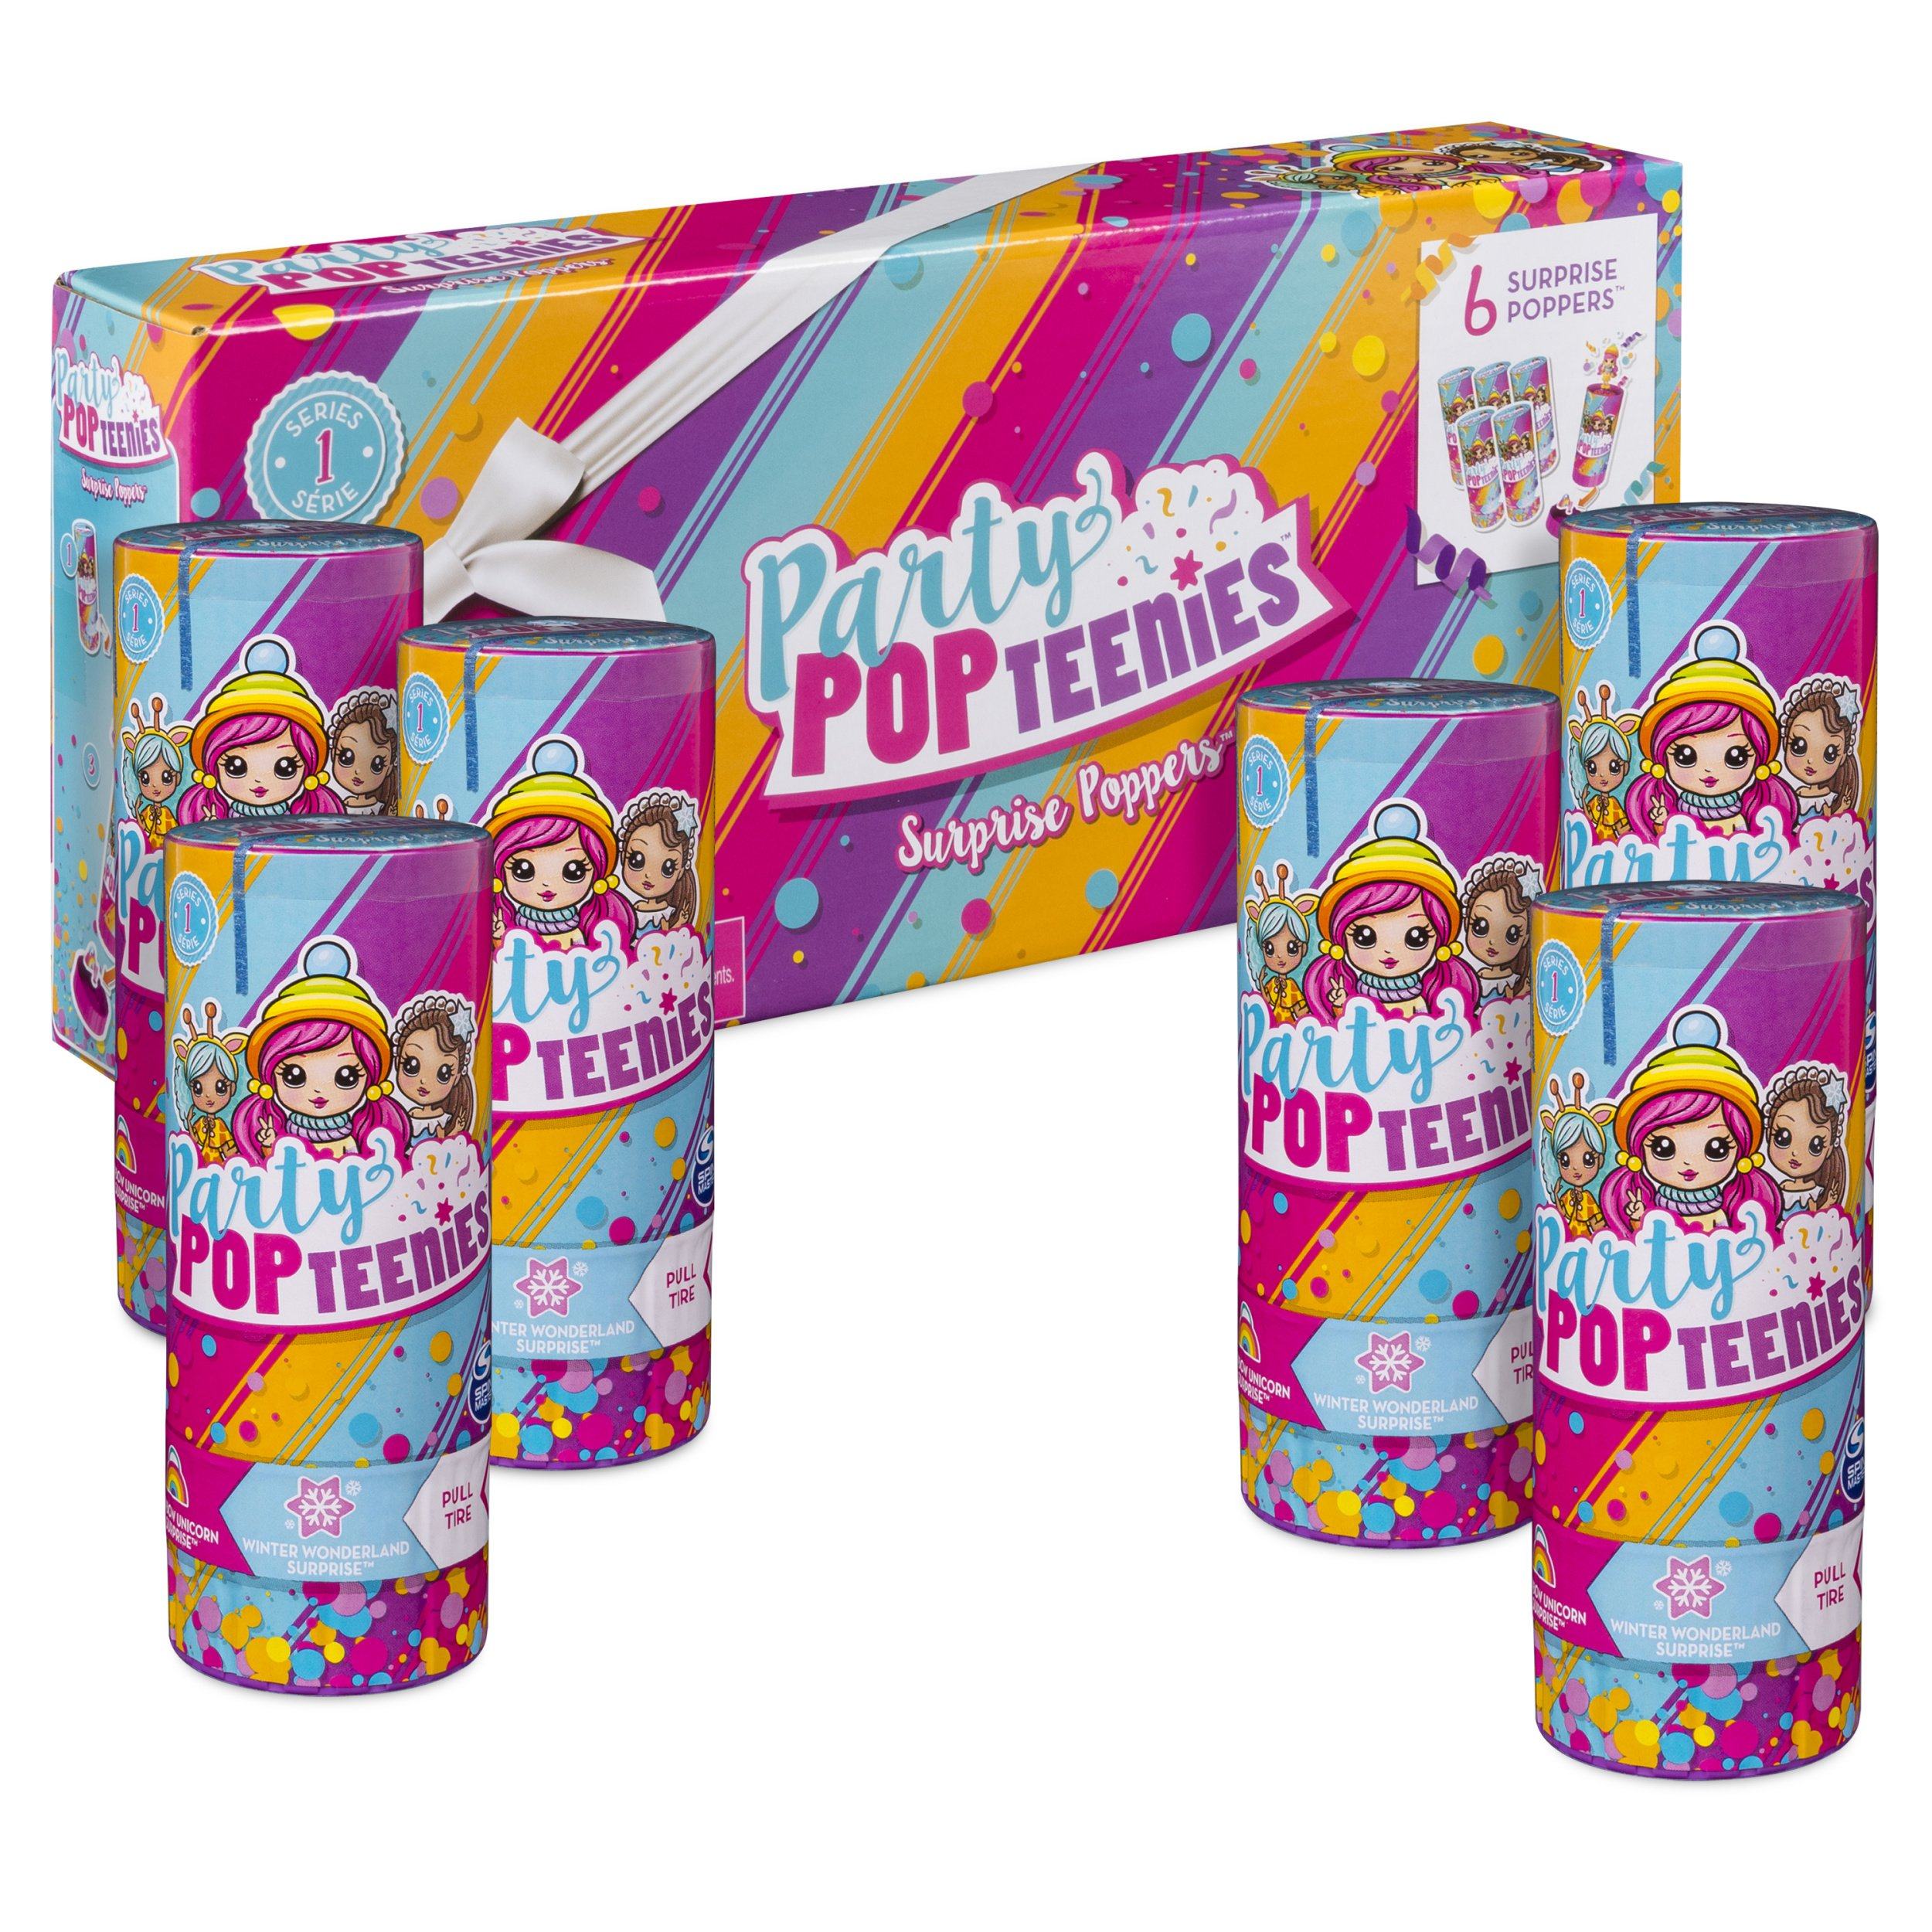 Party Popteenies - Party Pack - 6 Surprise Popper Bundle with Confetti, Collectible Mini Dolls and Accessories, for Ages 4 and Up (Styles Vary)